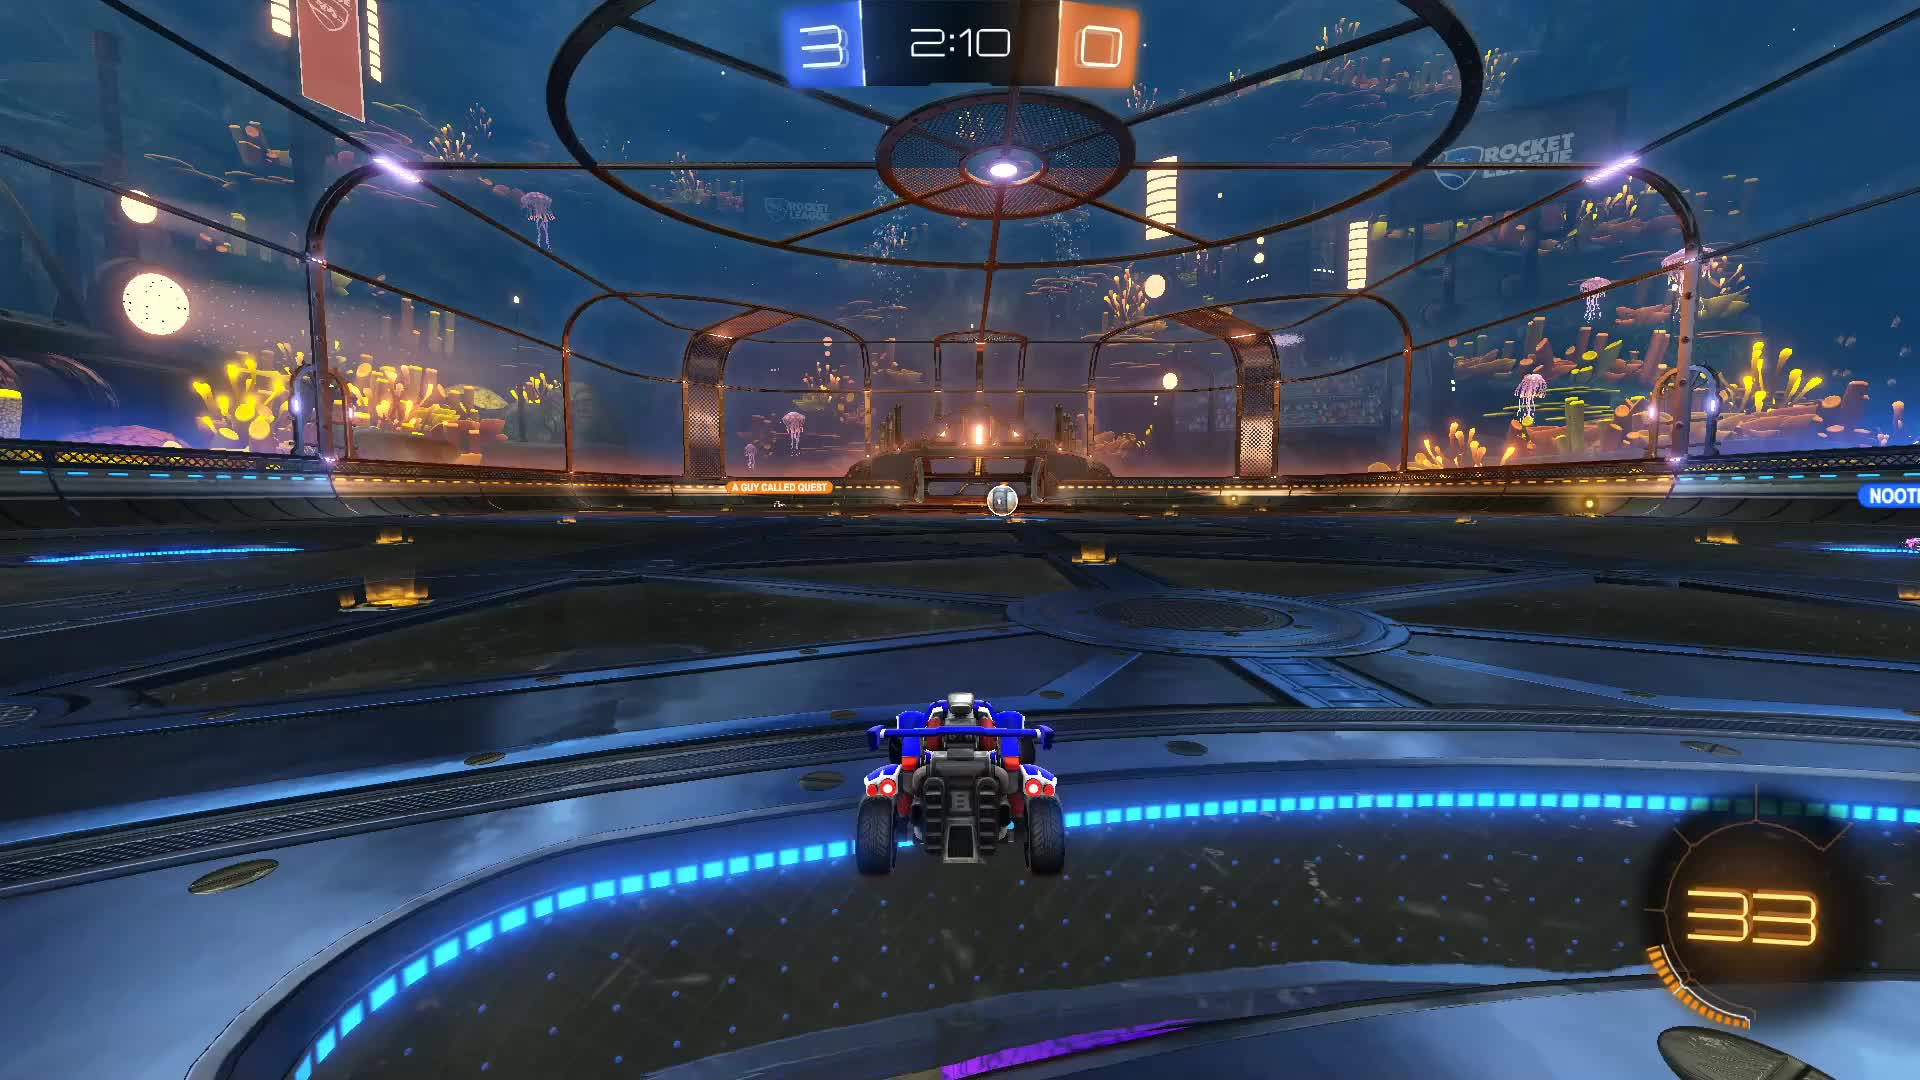 Gif Your Game, GifYourGame, Goal, Rocket League, RocketLeague, thePreach, Goal 4: thePreach GIFs